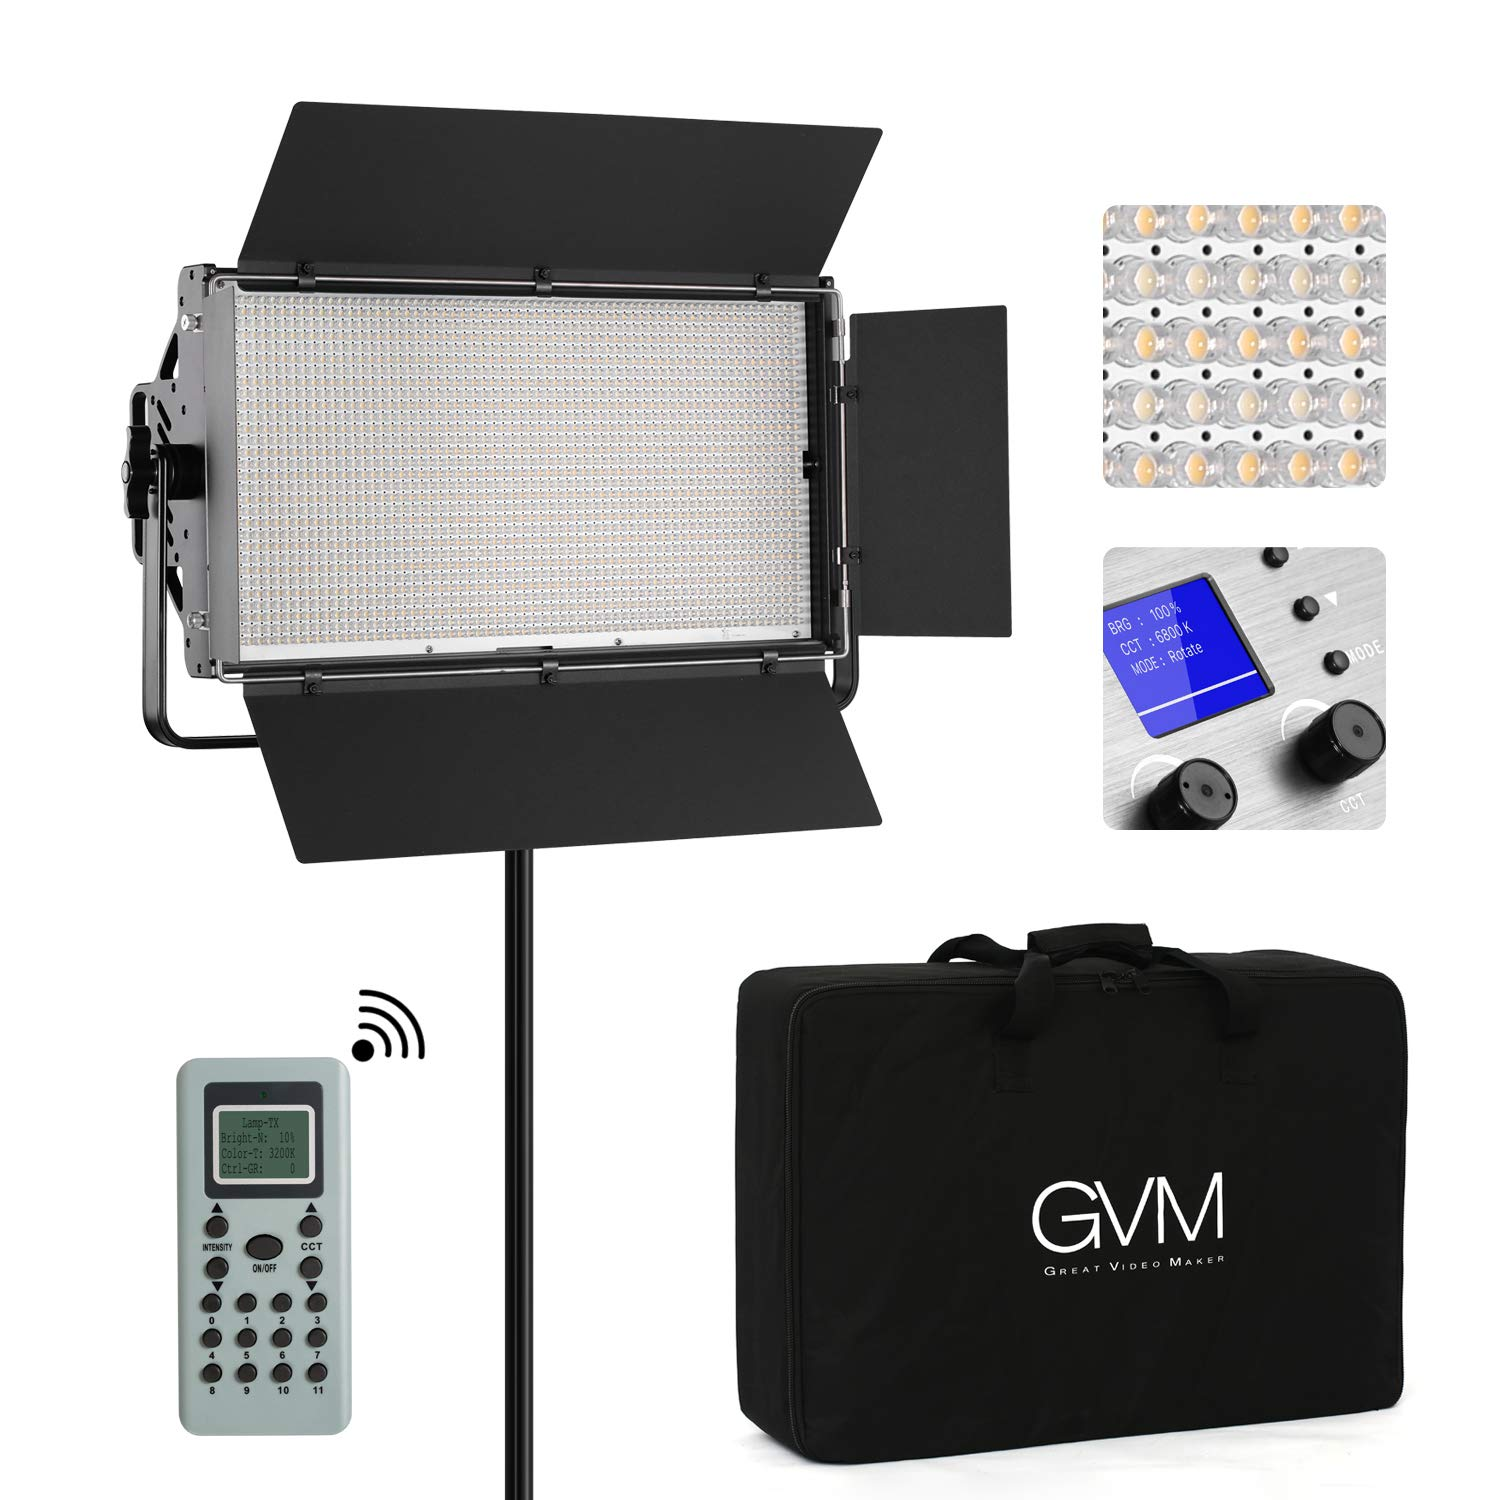 GVM Professional LED Video Light 110W Bi-Color 3200K-5600K Dimmable 1920 LED Panel Light for Photography Studio YouTube Video, CRI97+ TLCI97+ Remote Control, Barn-Door,Carry Bag by GVM Great Video Maker